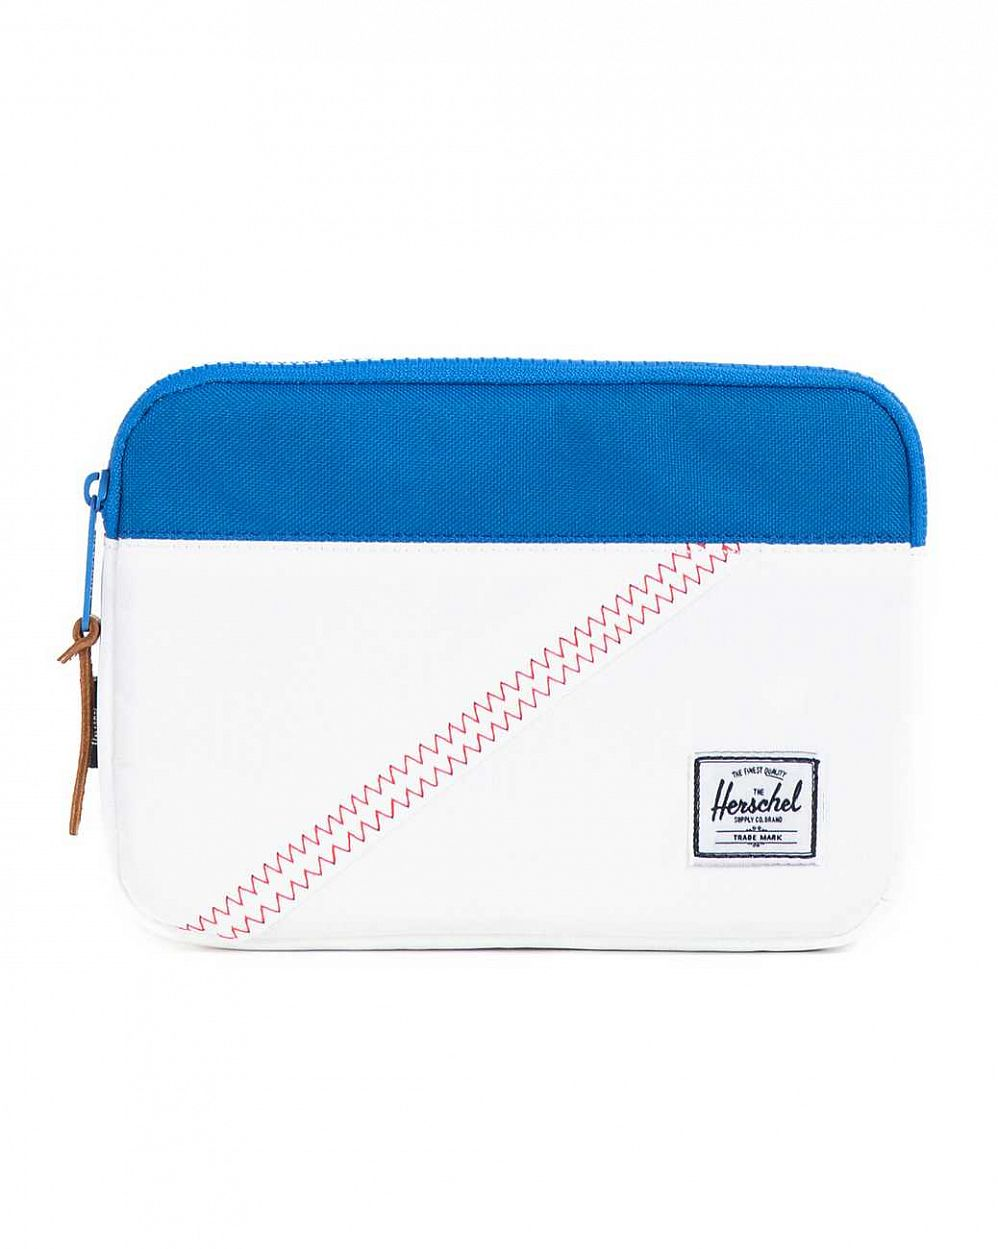 Чехол Herschel Anchor Sleeve для iPad Mini White Regatta Blue отзывы